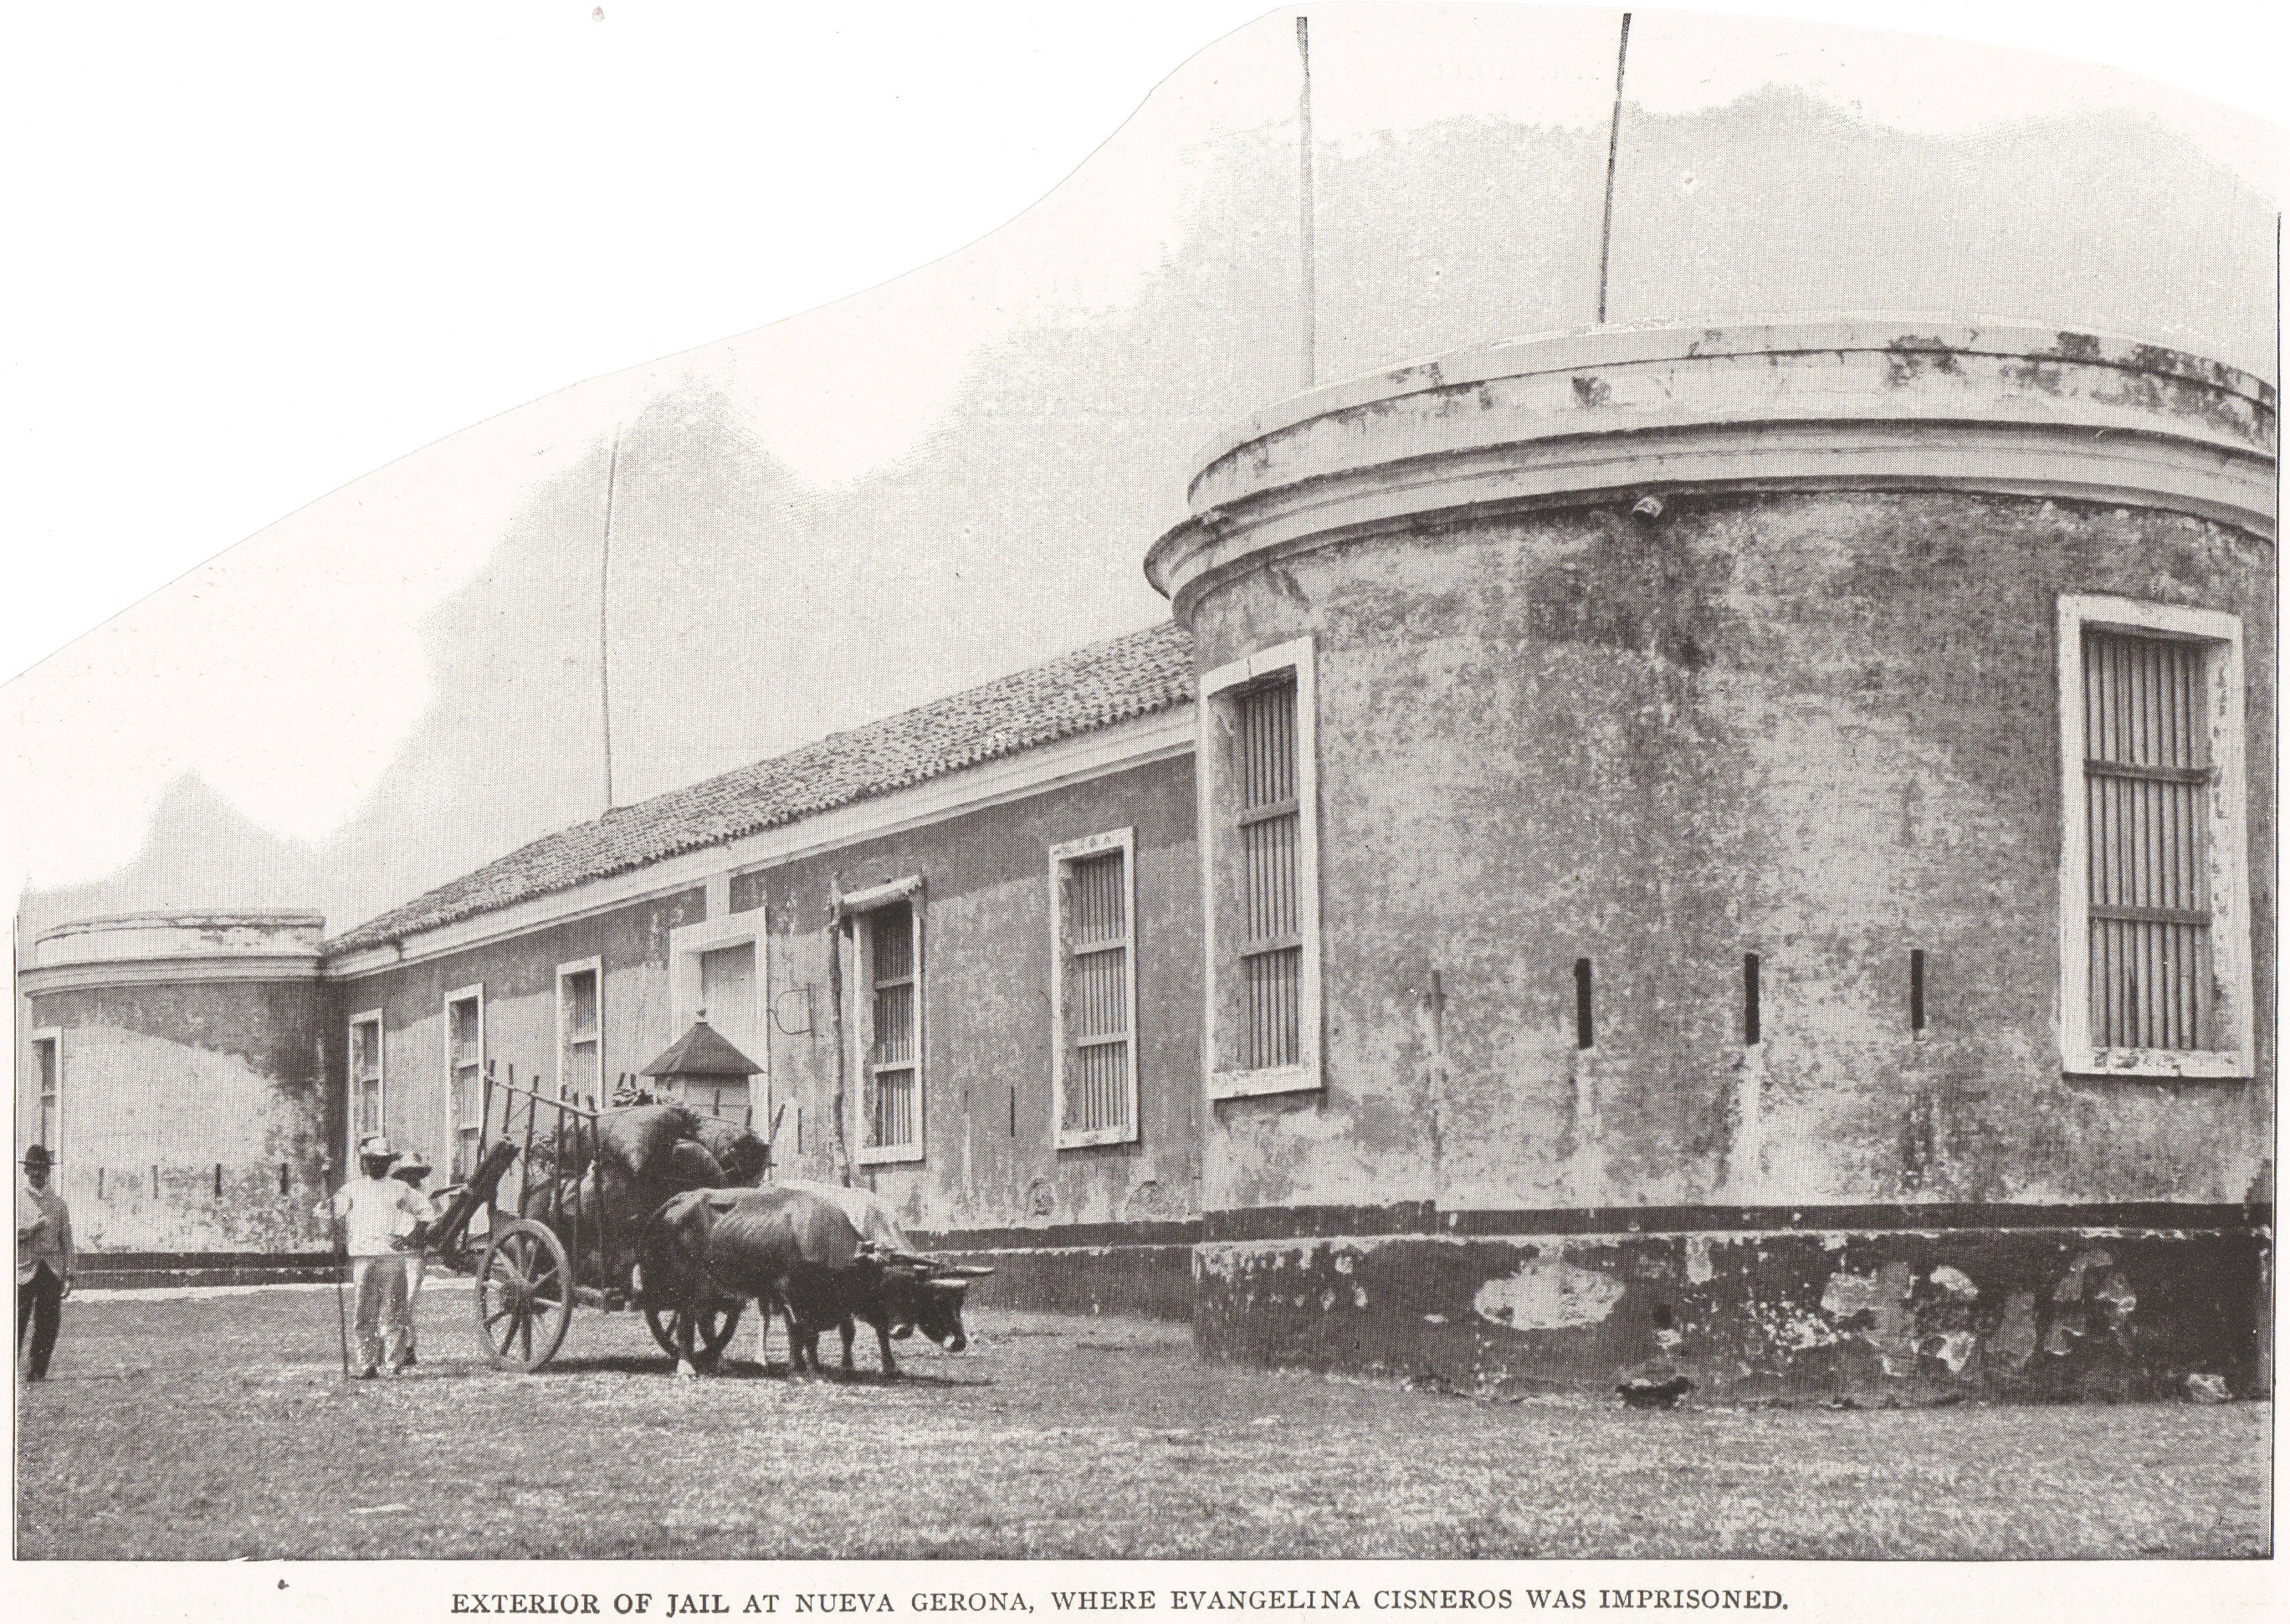 Exterior of Jail at Nueva Gerona, Cuba (1898)